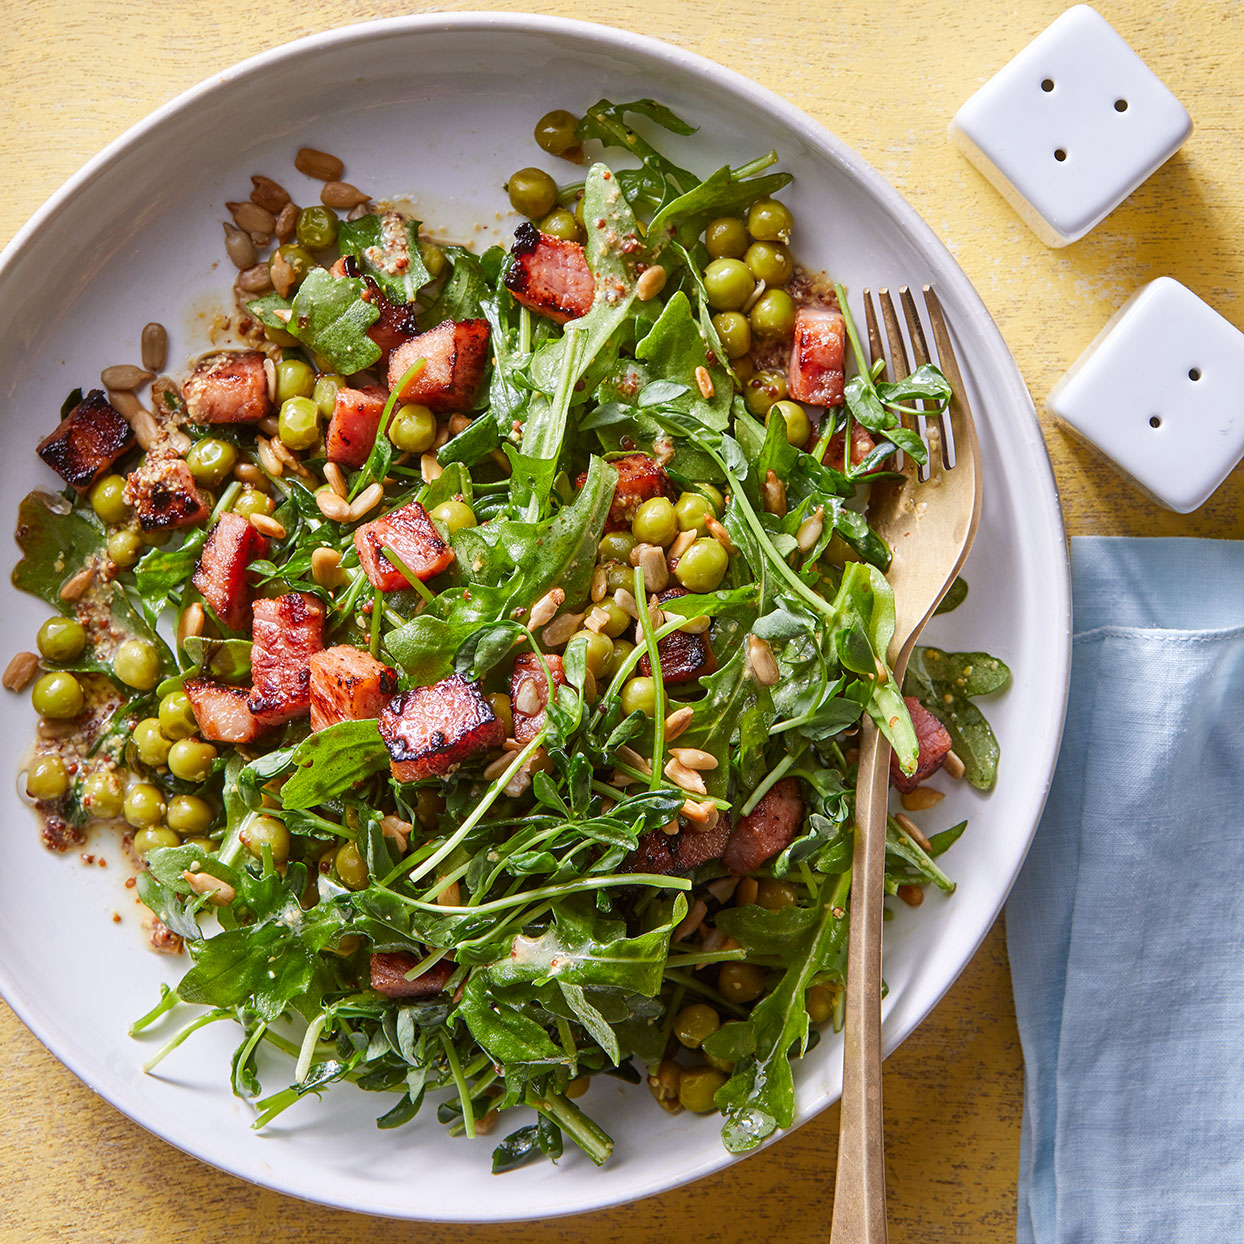 Pea shoots are the tender leaves and stems of sugar snap pea plants--not to be confused with the more delicate pea sprouts, which, like microgreens, are the sprouted seeds. Turn leftover ham into a crouton-esque topping with a quick sear in a hot pan. Source: EatingWell Magazine, April 2020